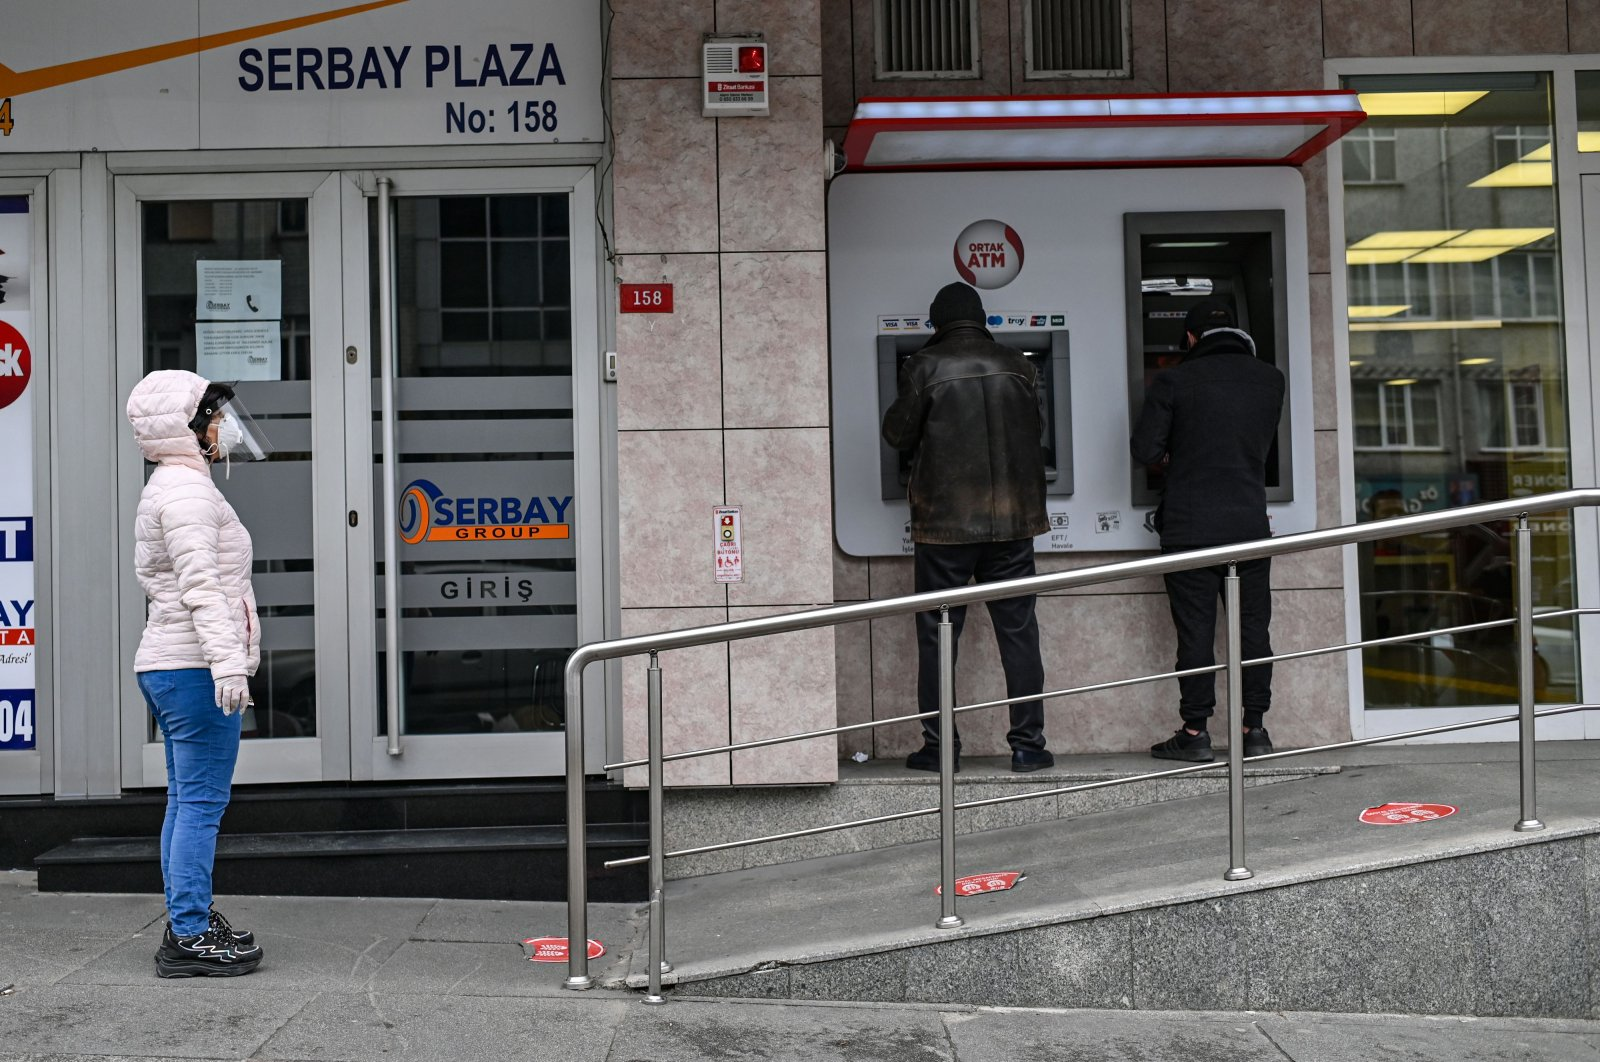 People queue to use ATM machines while observing social distancing rules outside a bank in Istanbul, Turkey, April 21, 2020. (AP Photo)